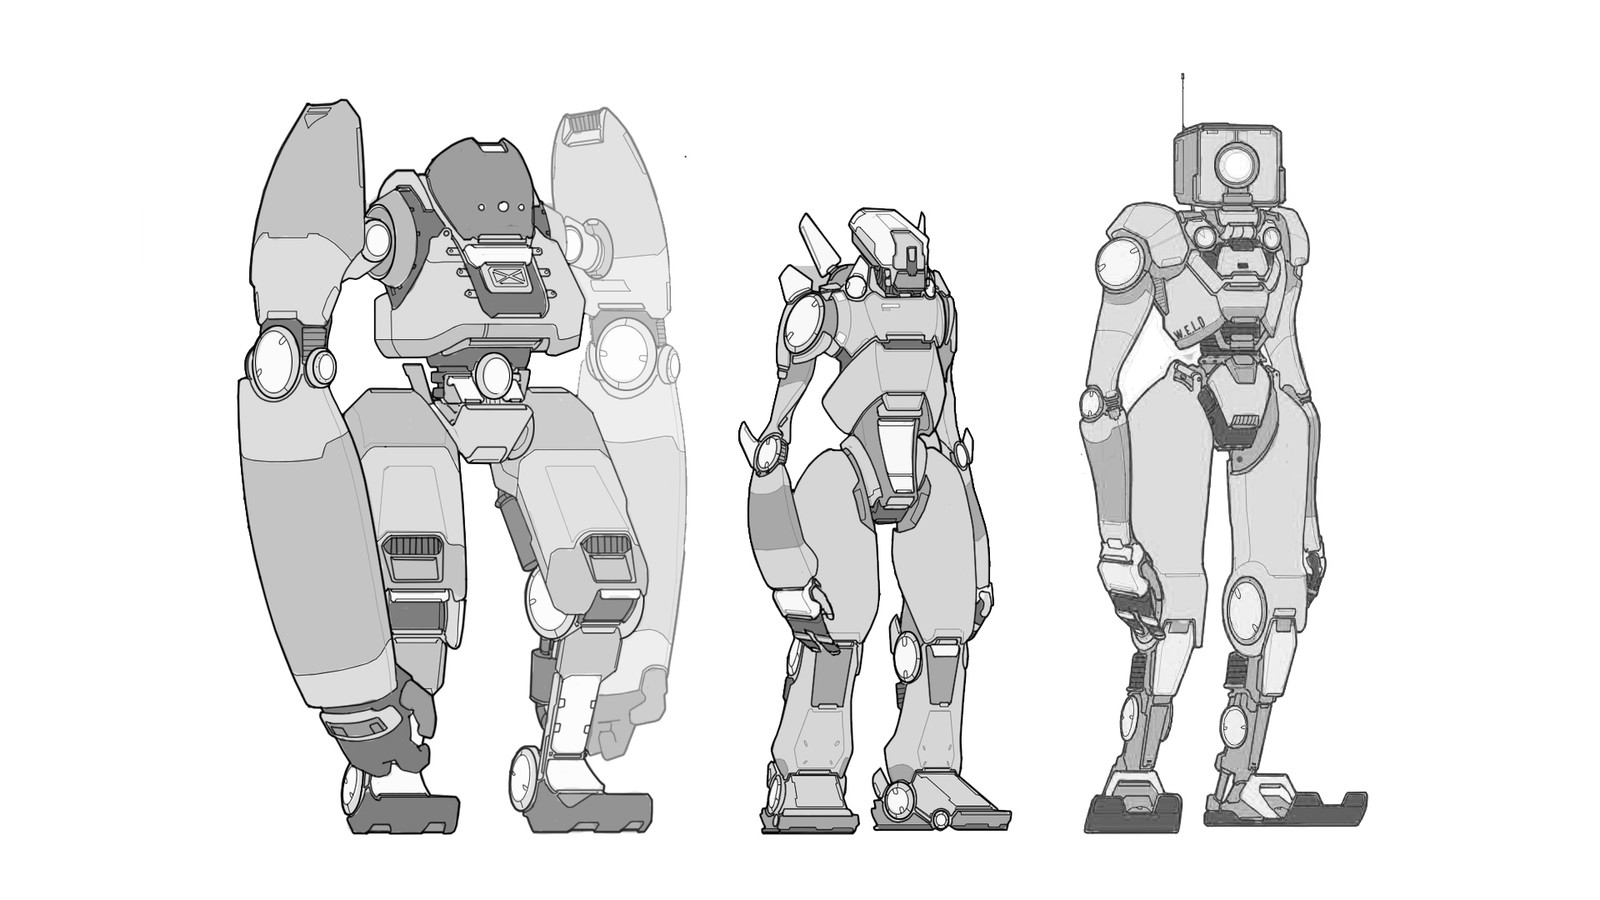 Early robot designs